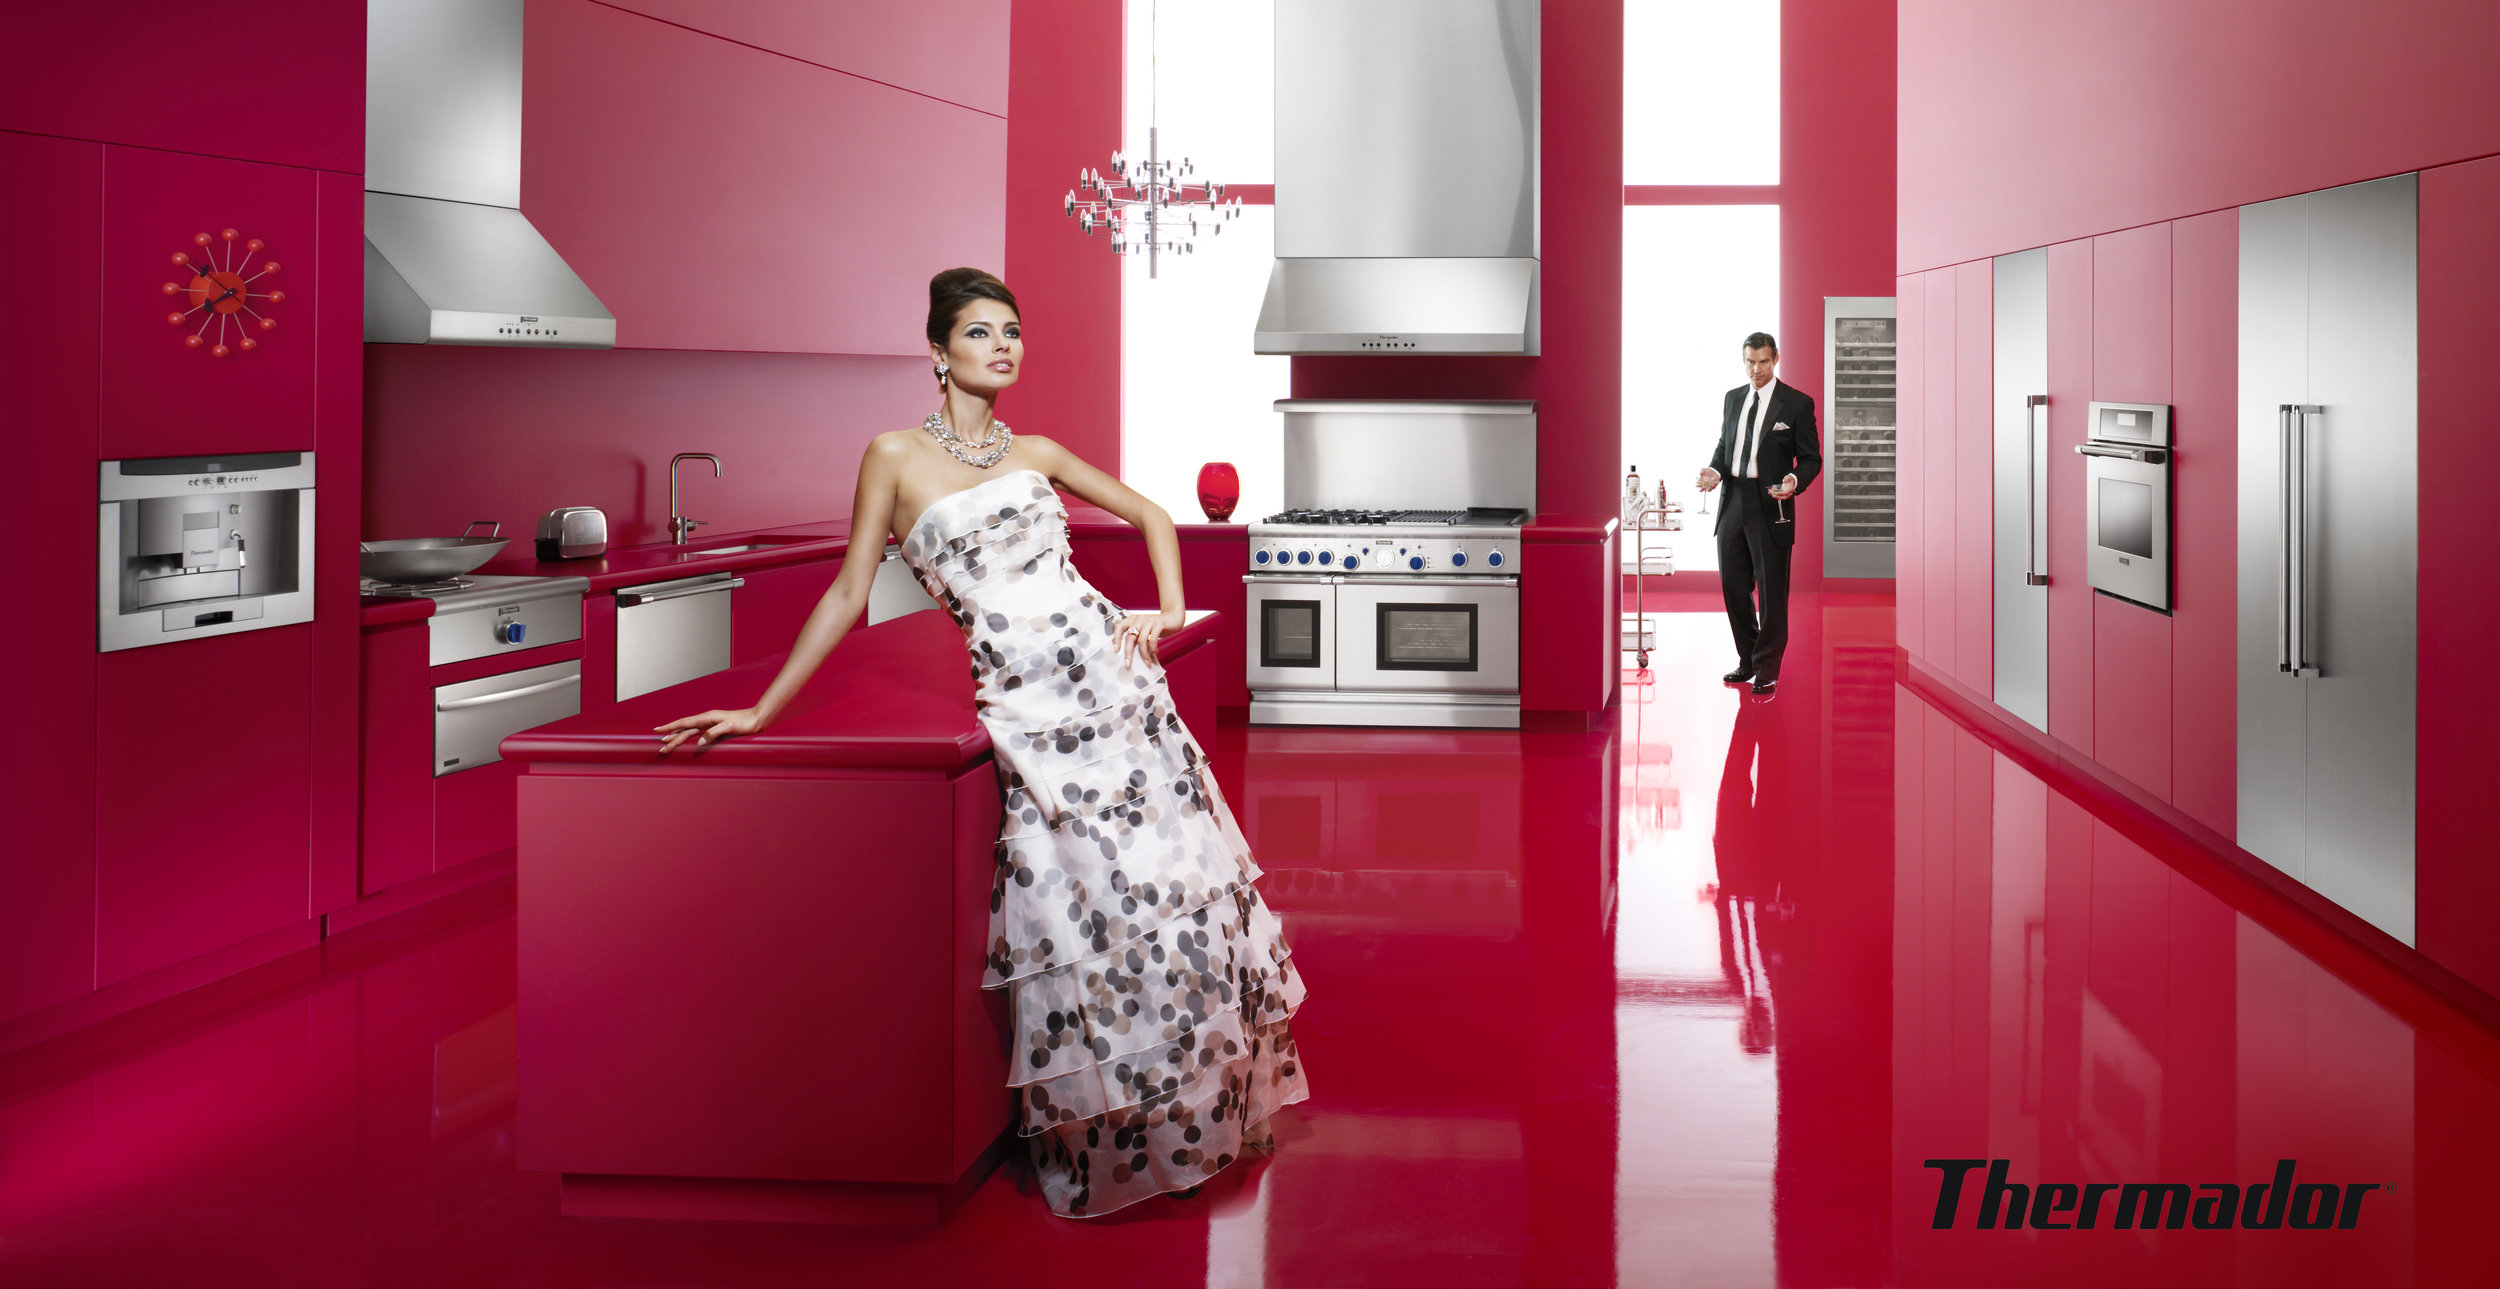 stan_musilek_creative_commercial_photography_thermador_kitchen_ad.jpg